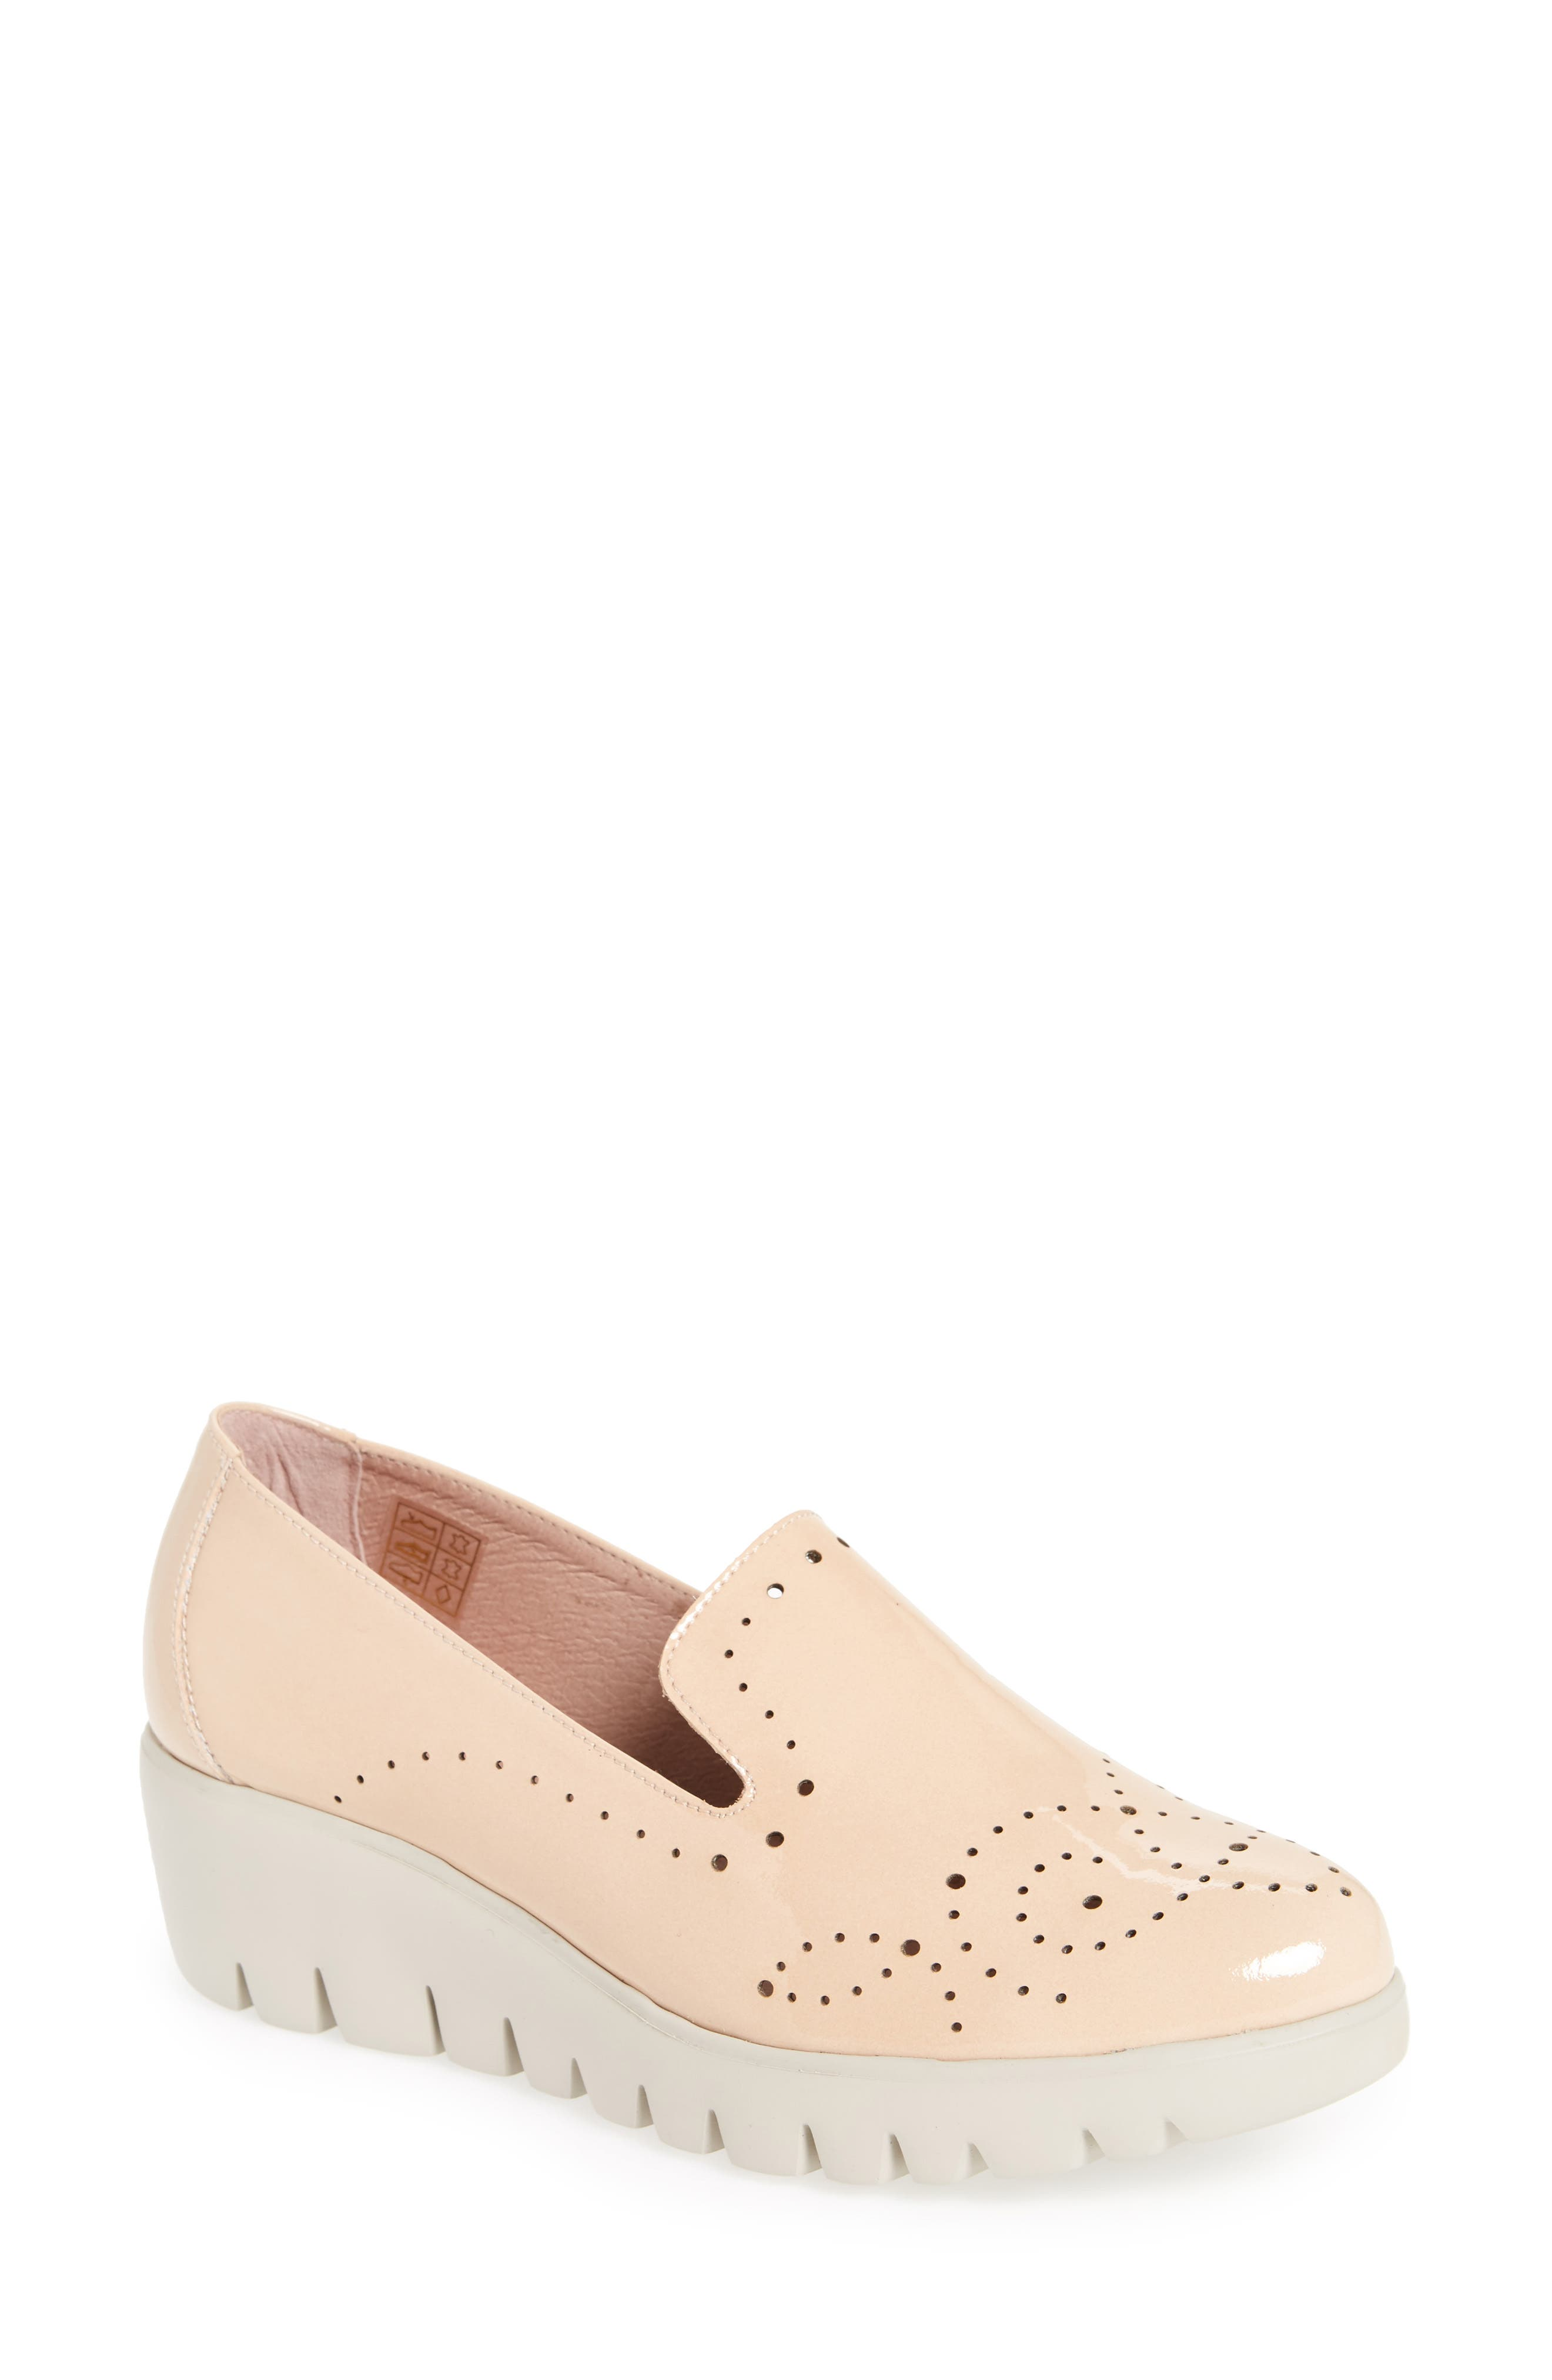 C-33114 Loafer Wedge,                             Main thumbnail 1, color,                             Palo Beige Leather